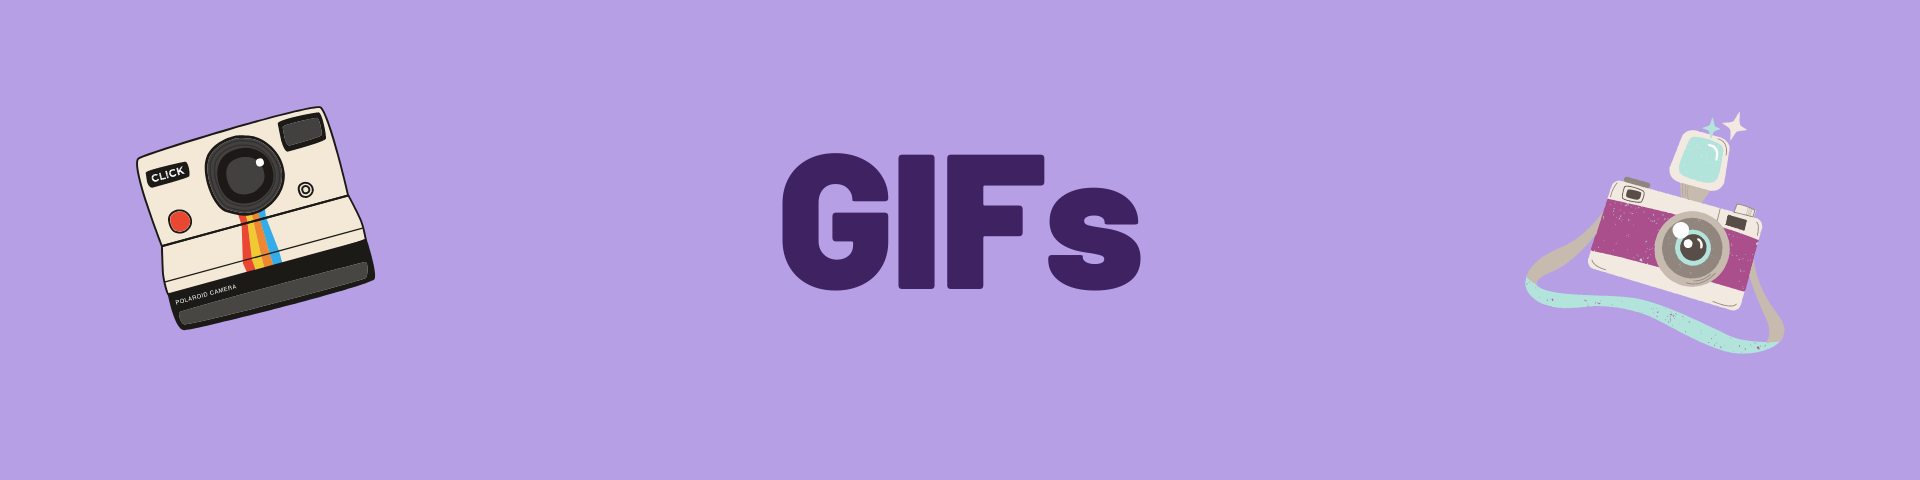 "A purple banner says ""GIFS"""